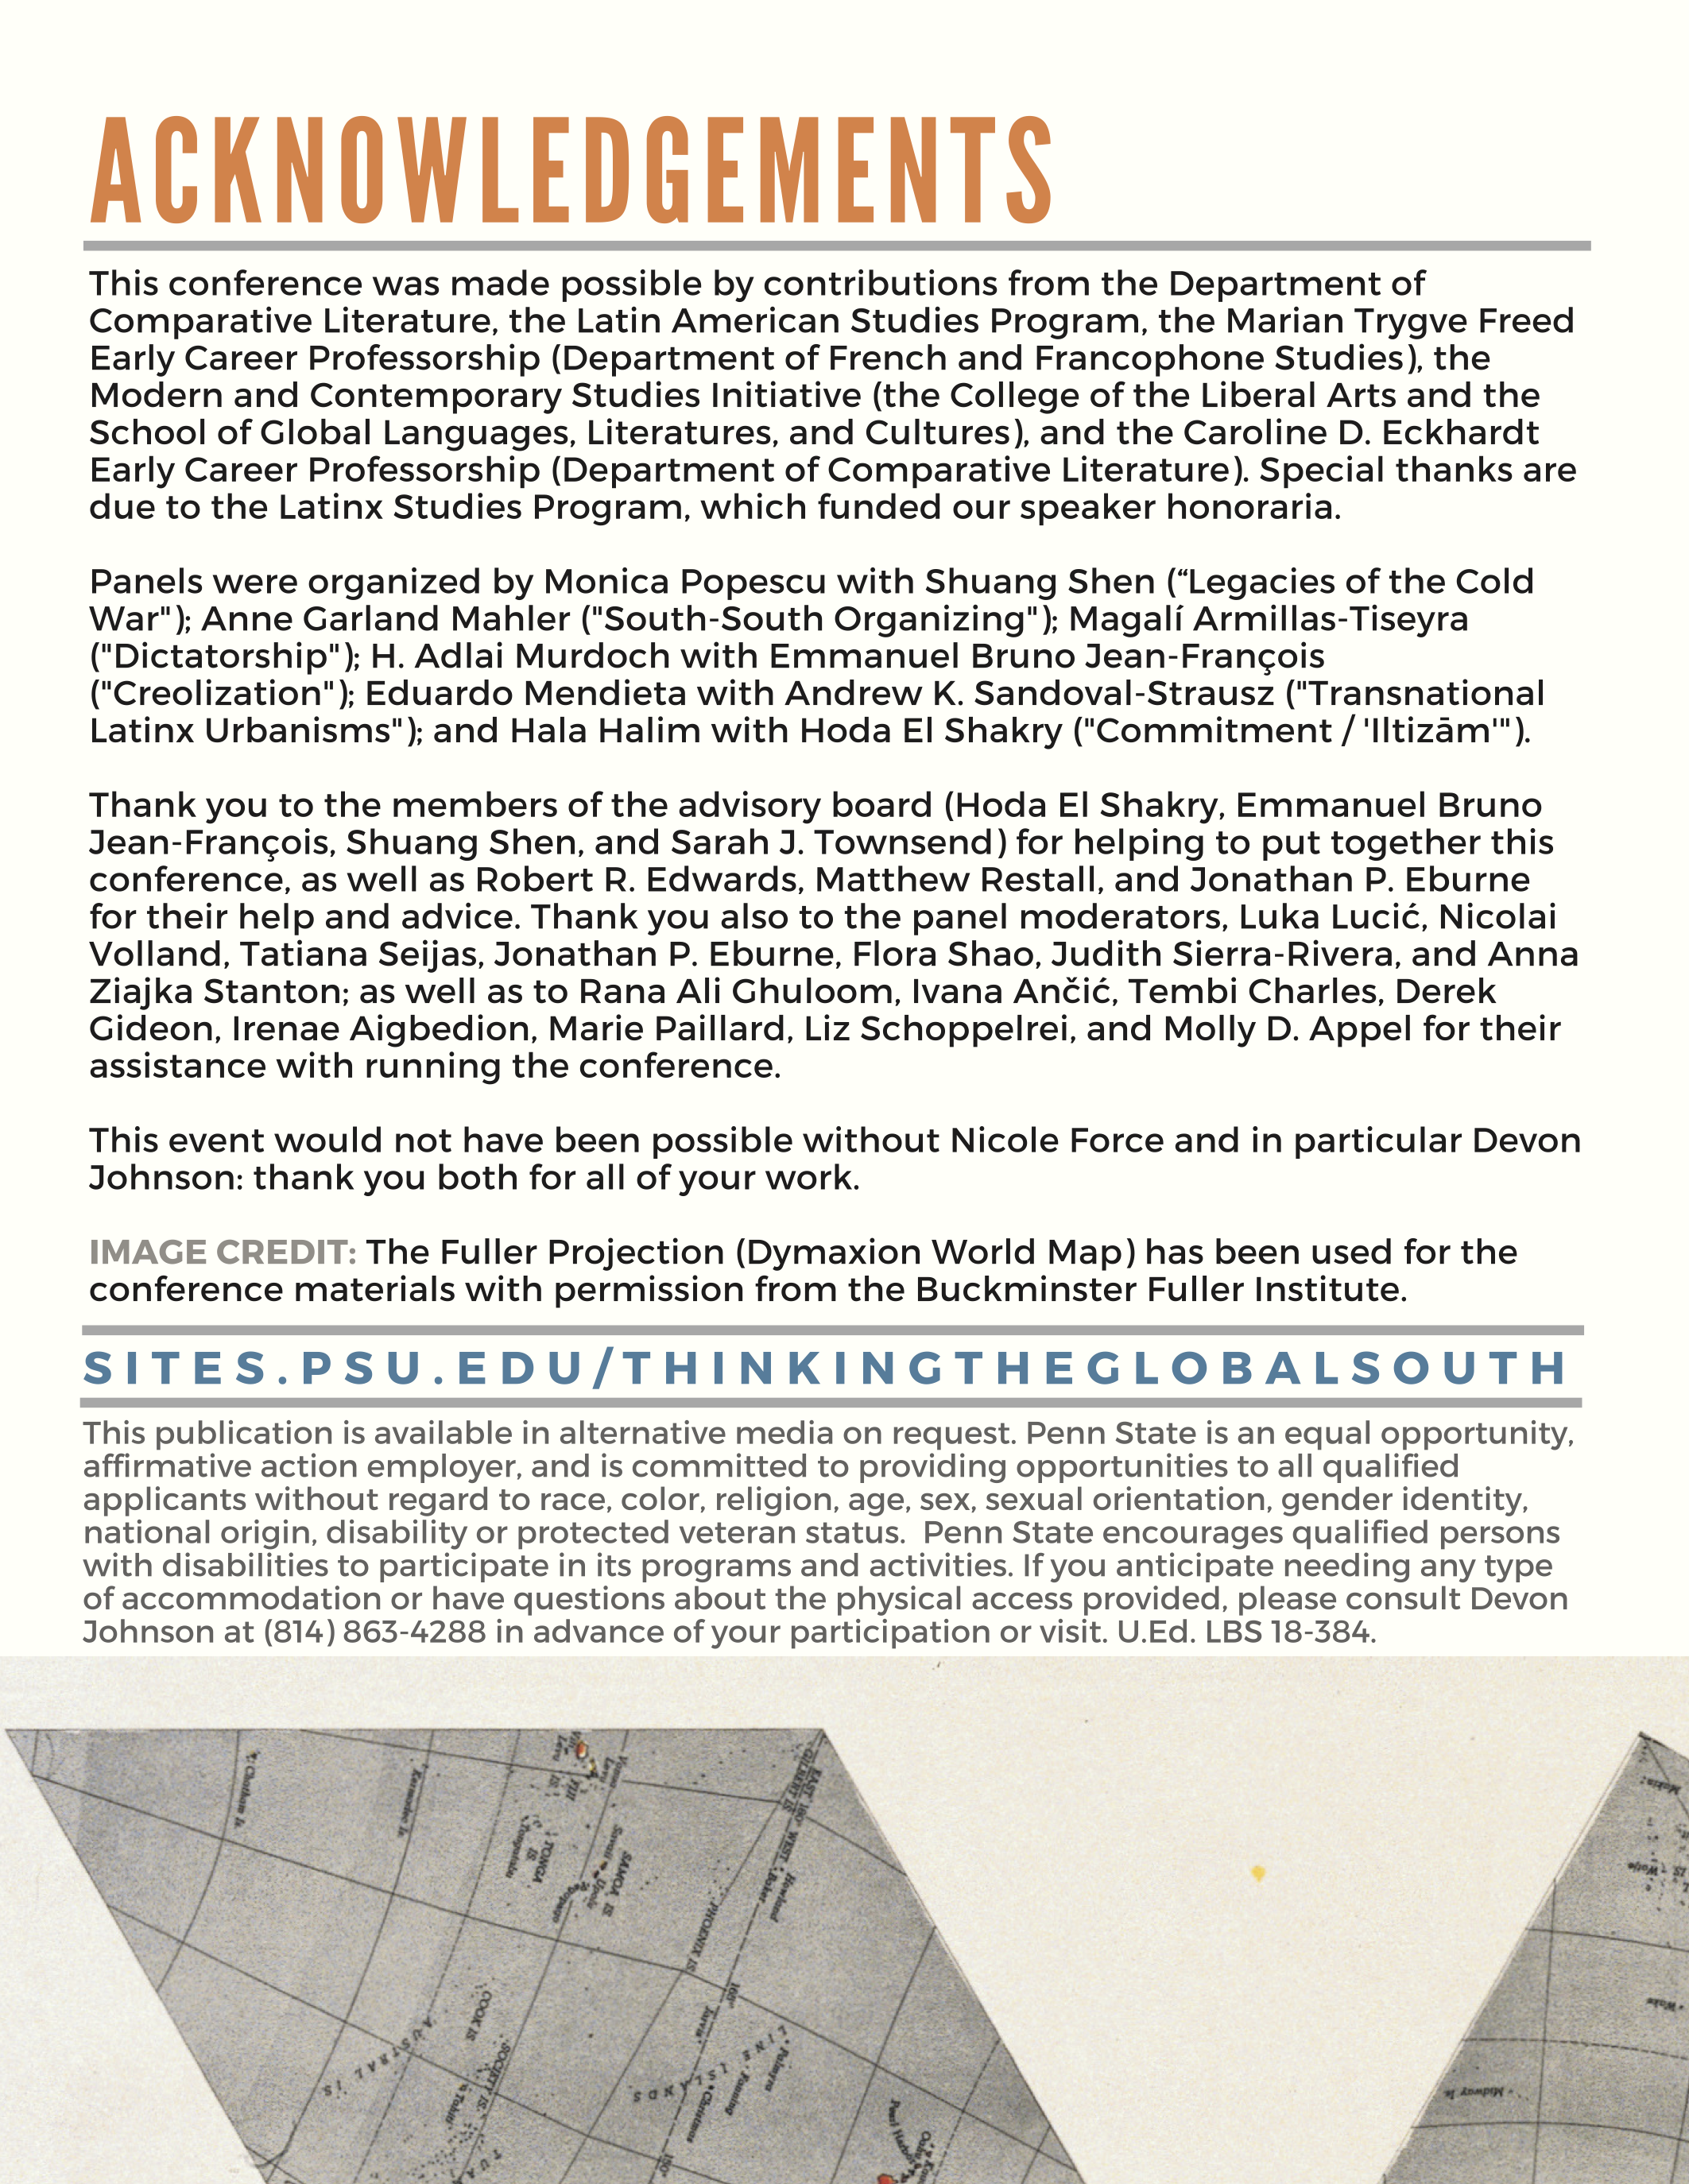 Thinking the Global South - Conference Program-6 (dragged) copy.png